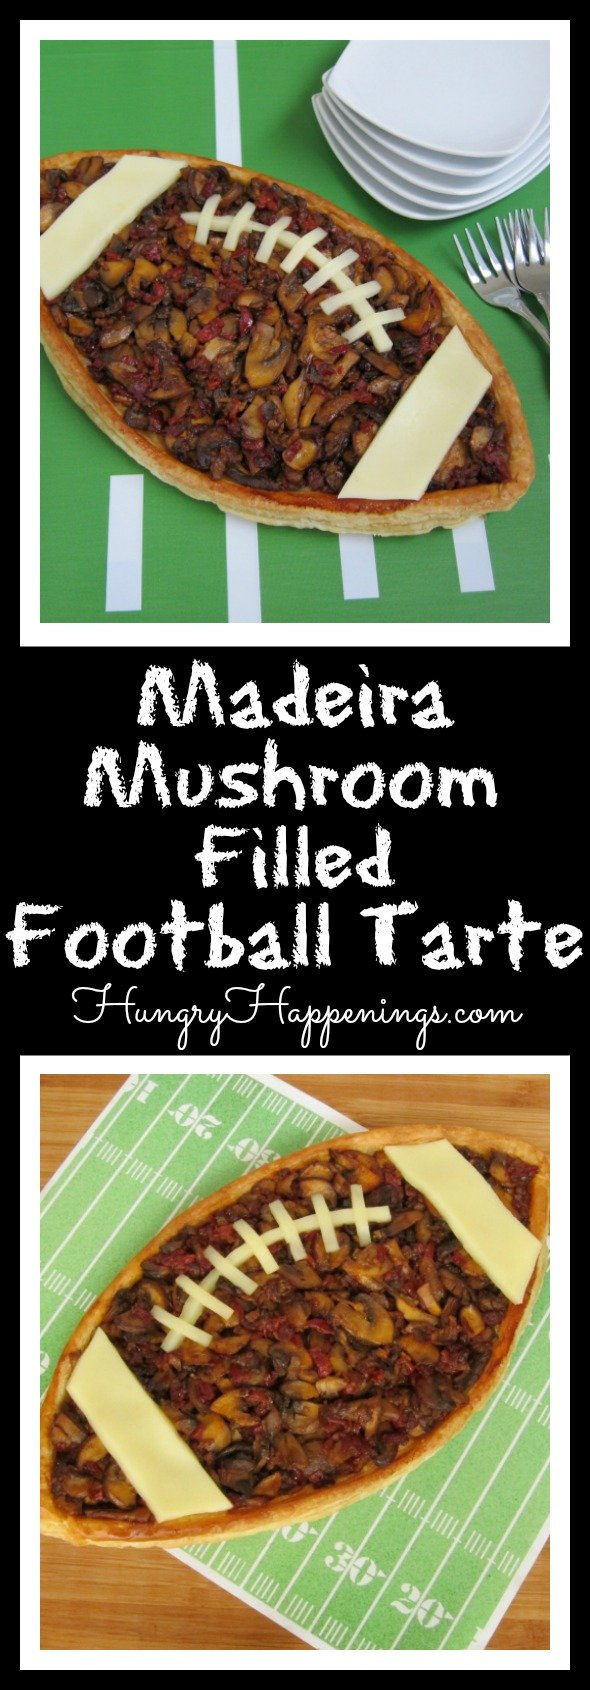 This Madeira Mushroom filled Football Tart is for all the mushroom lovers at the party. There can never be enough of them in a dish, and this appetizer proves it!